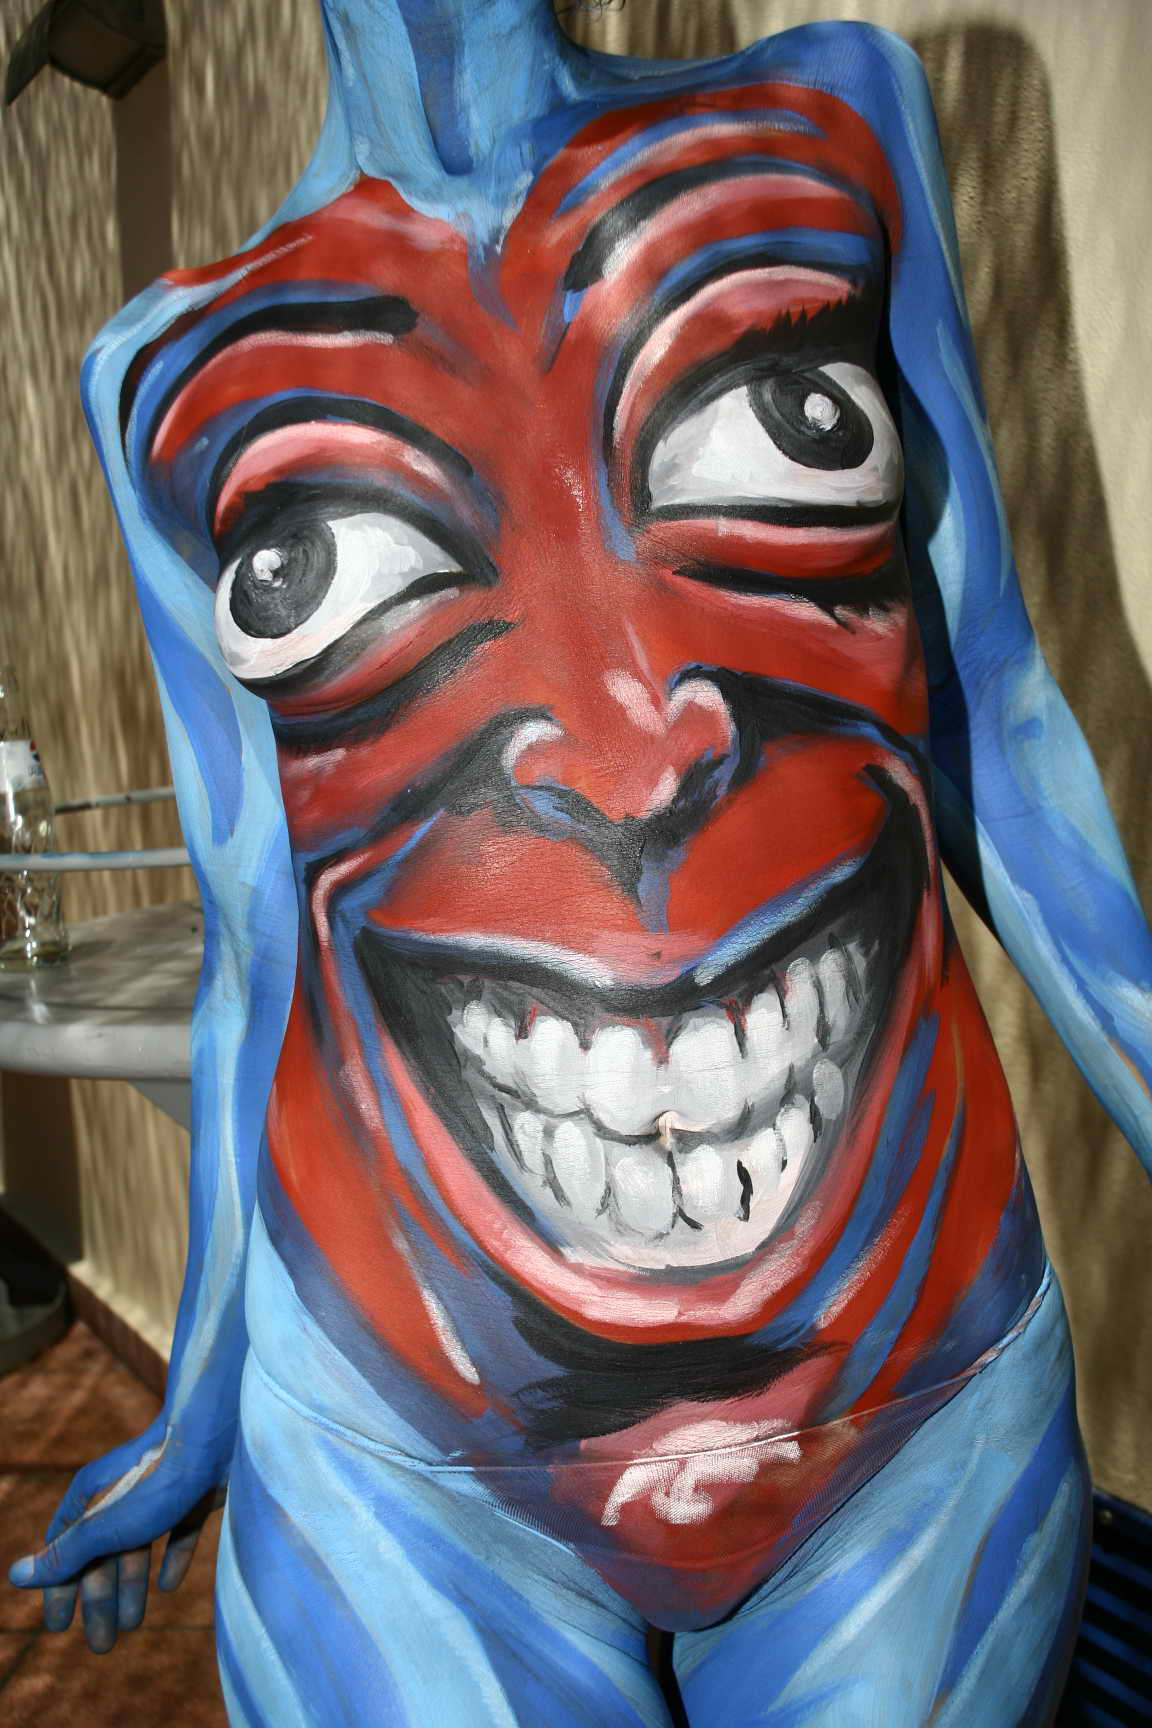 ibiza, arte, bodypainting, Streakka Space, maquillaje, Fake, action painting, pintura en directo